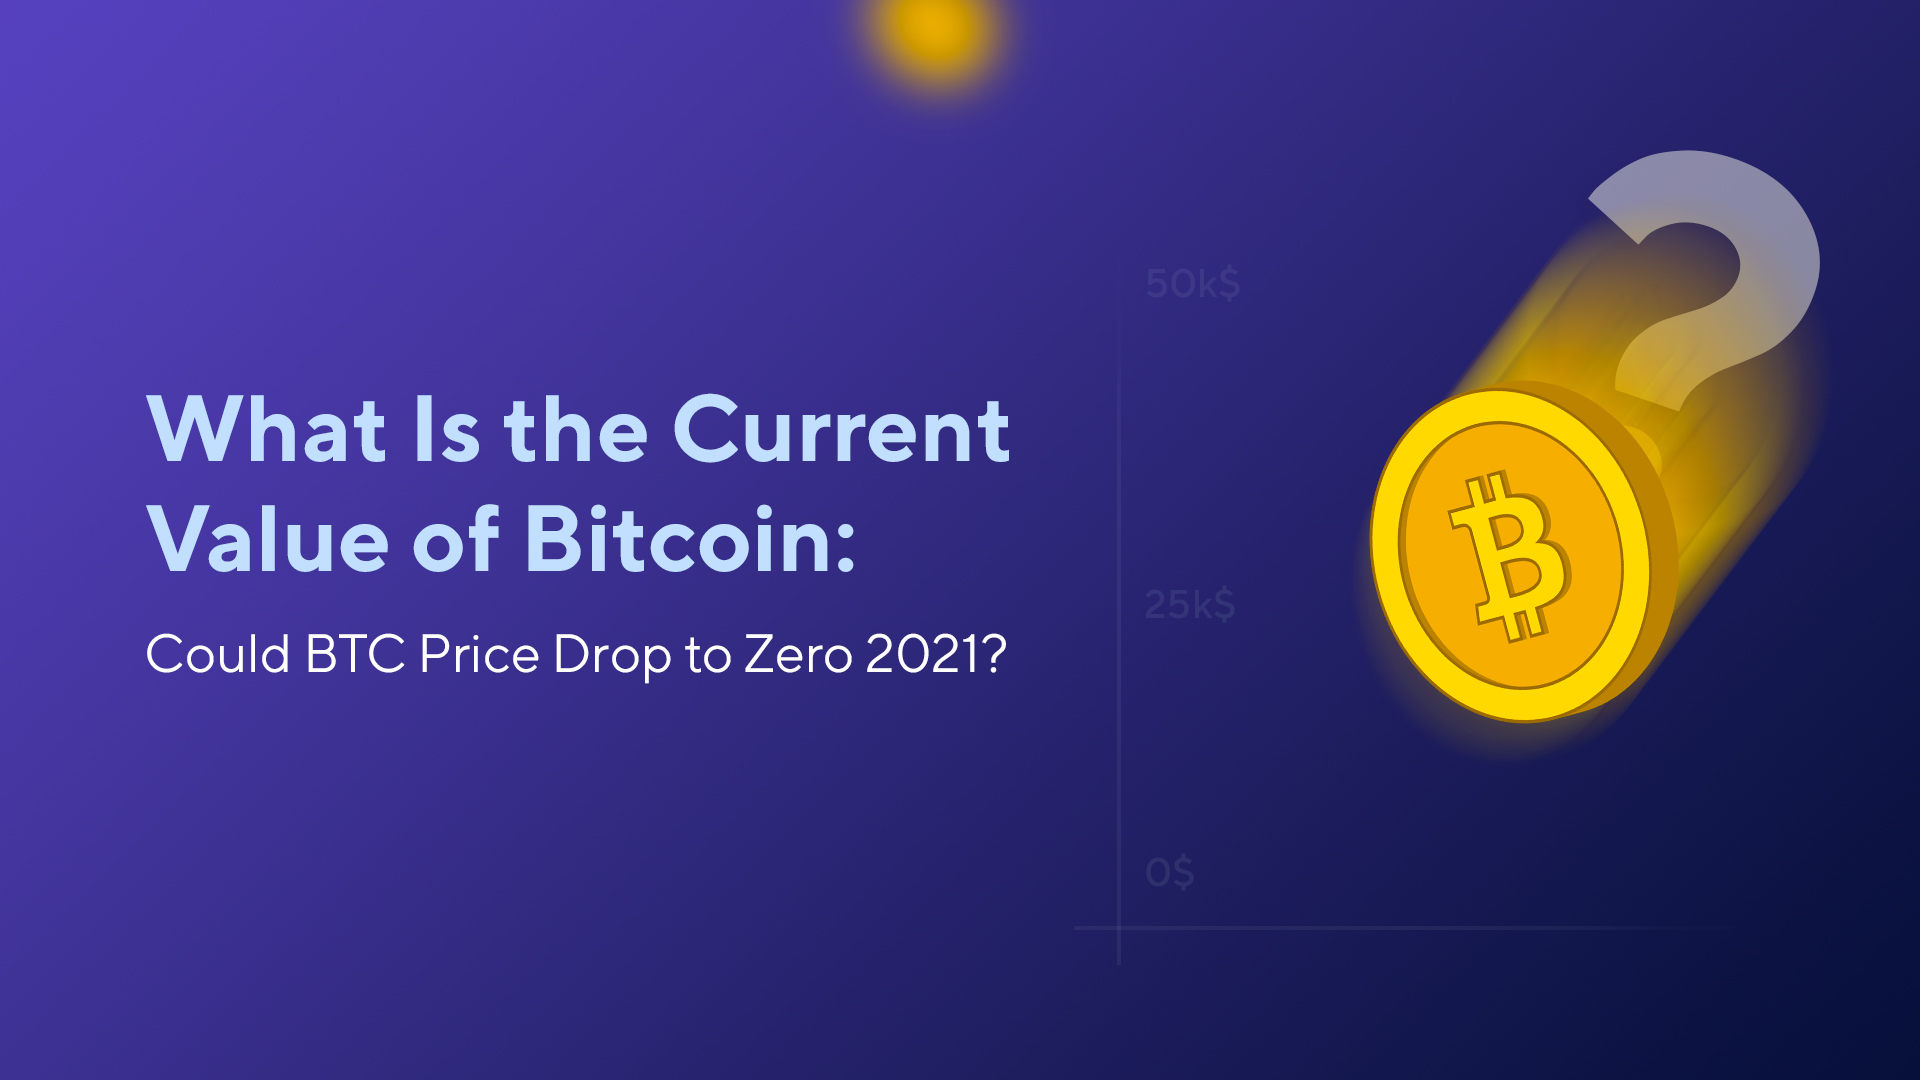 What Is the Current Value of Bitcoin: Could BTC Price Drop to Zero 2021?